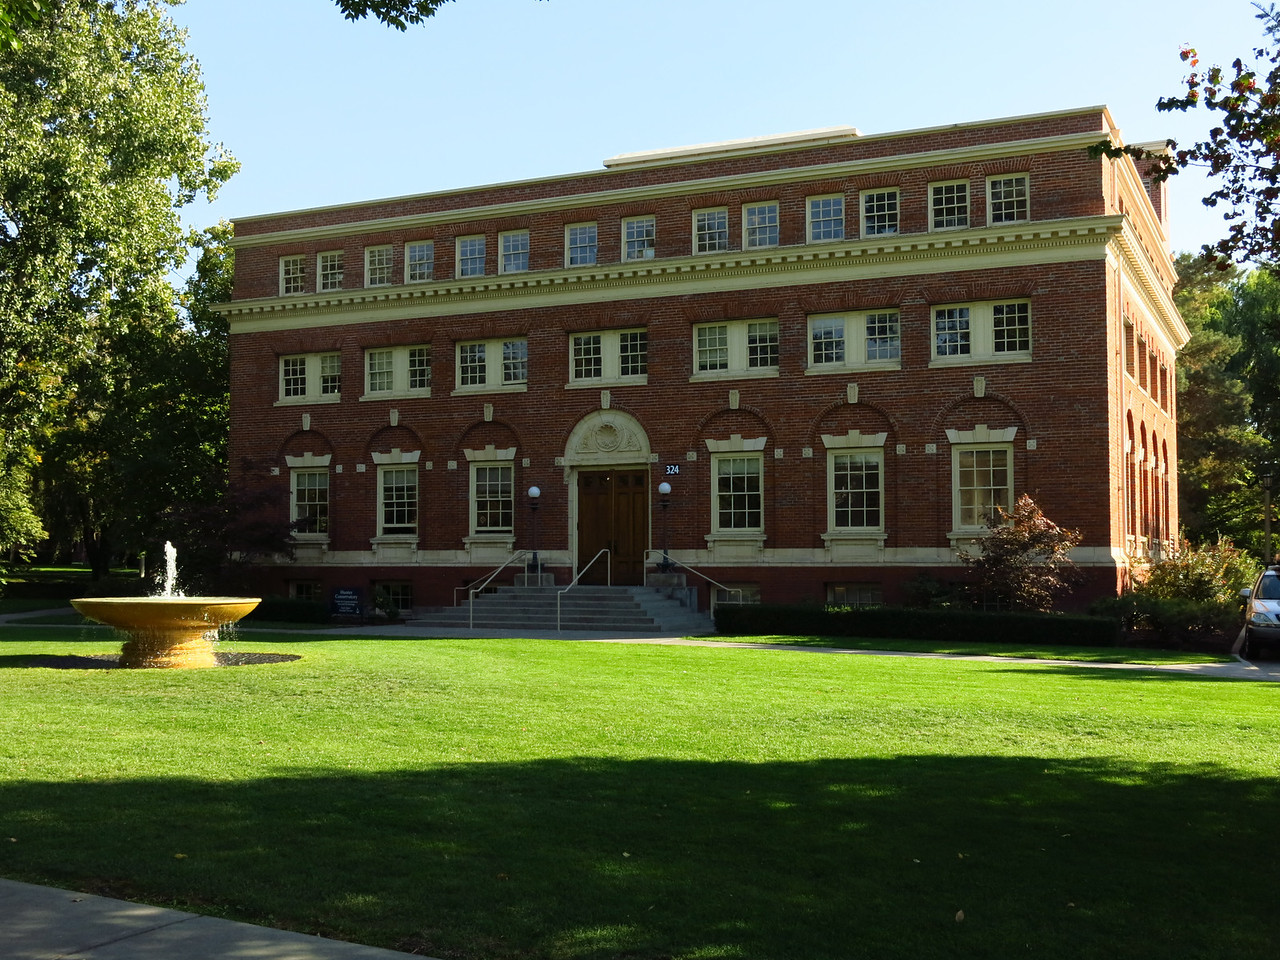 A building on the Whitman campus.